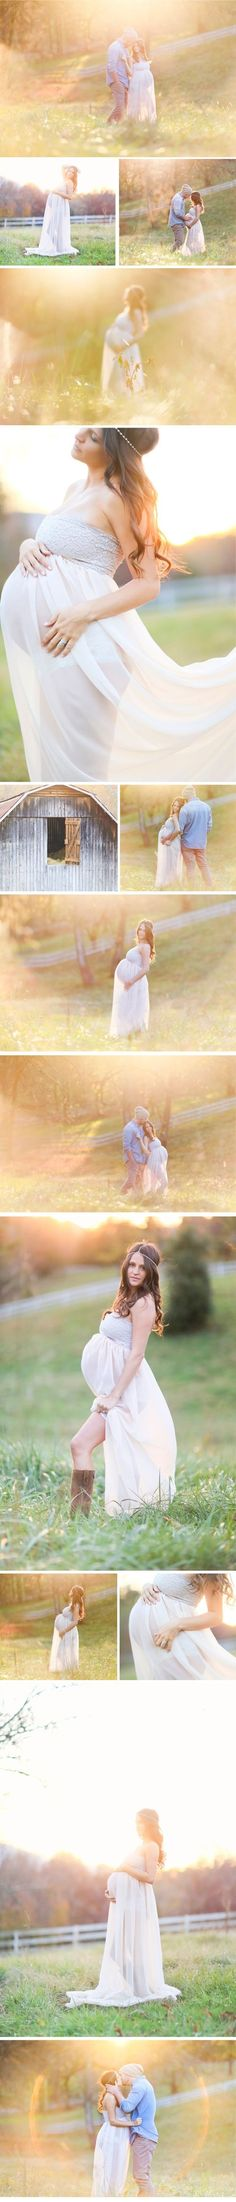 Fairy tale like maternity photos so beautiful